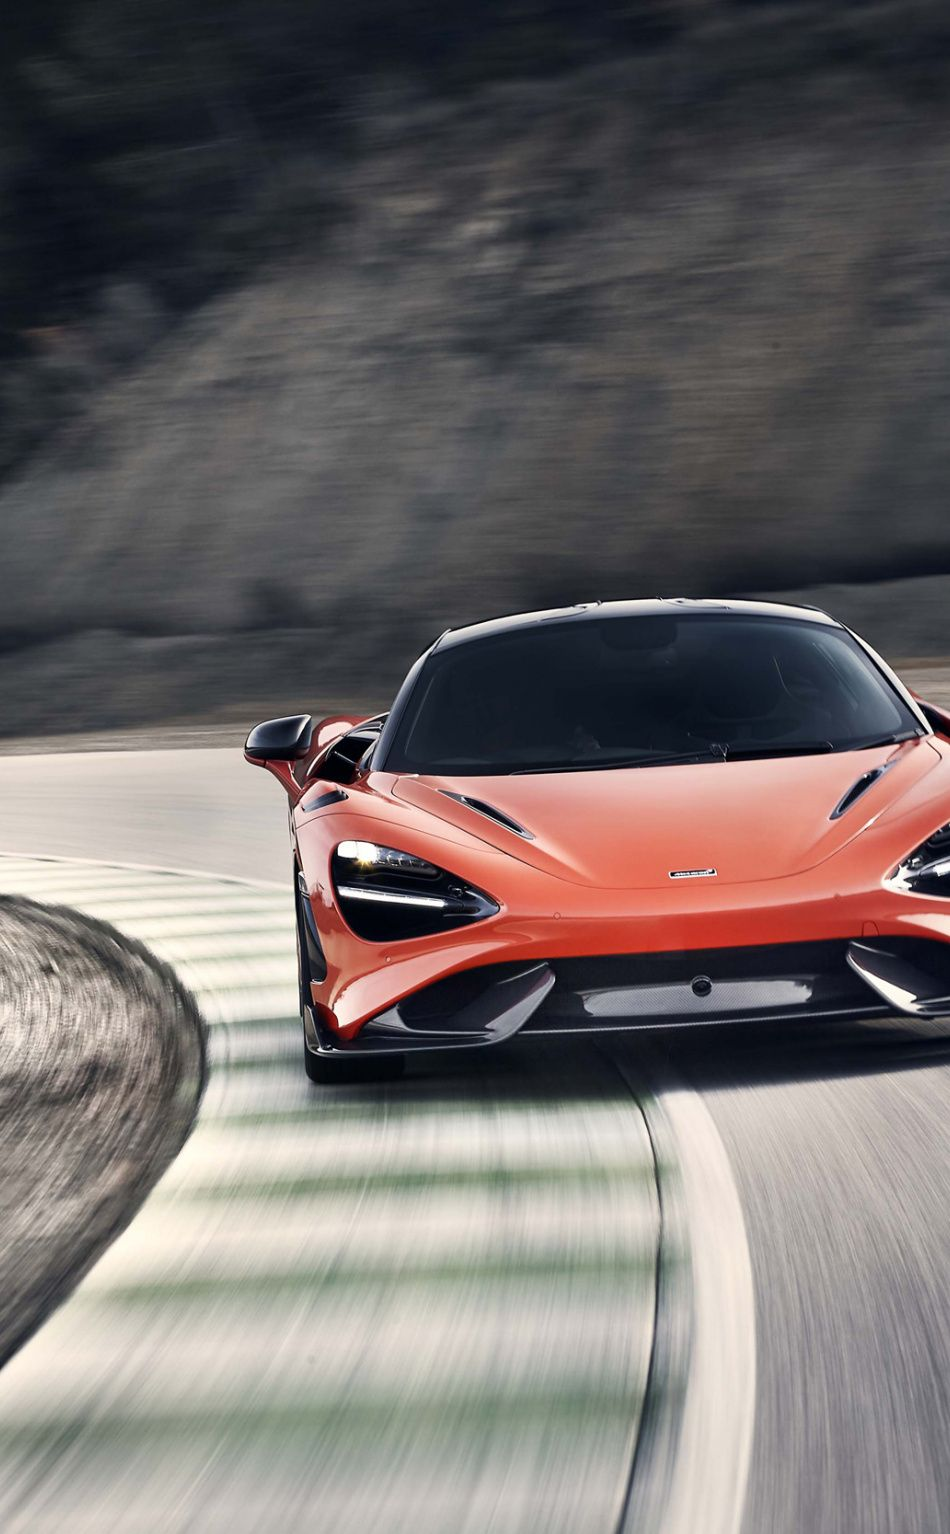 950x1534 On Road Mclaren 765lt Sportcar Wallpaper In 2020 Mclaren Cool Car Drawings Car Wallpapers